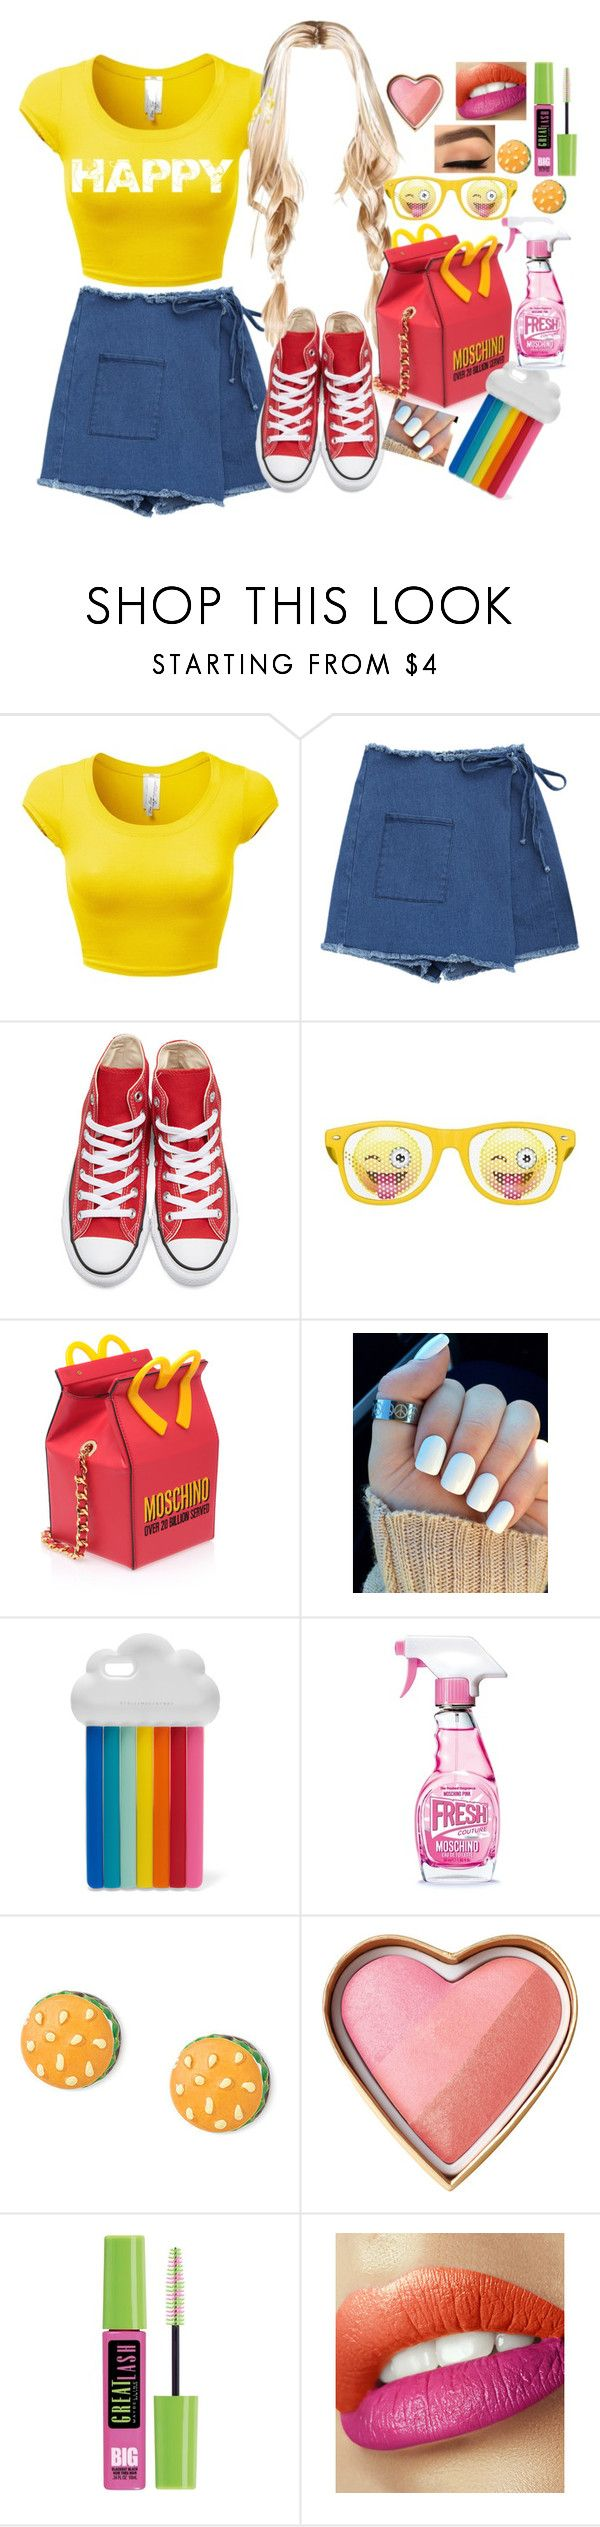 """HAPPY 😊 PHARRELL WILLIAMS 😊 #GRWMUSIC 😊"" by axelyamary ❤ liked on Polyvore featuring Converse, Moschino, STELLA McCARTNEY and Maybelline"